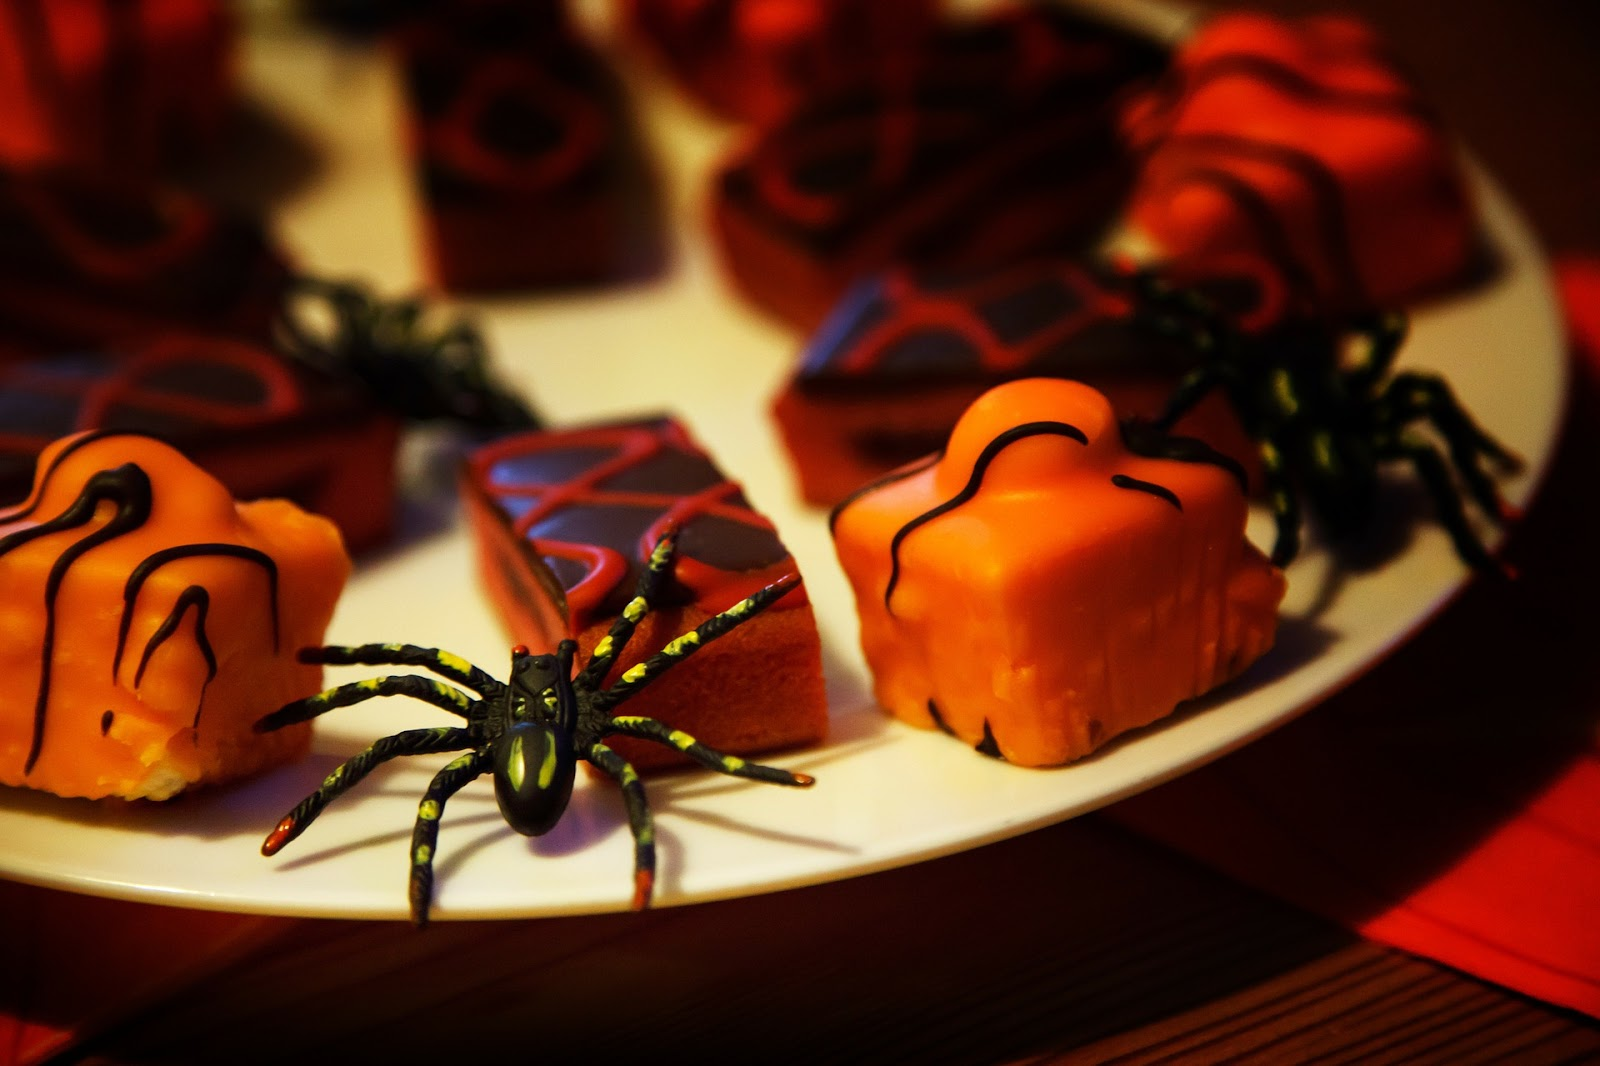 Dessert plate with plastic spiders